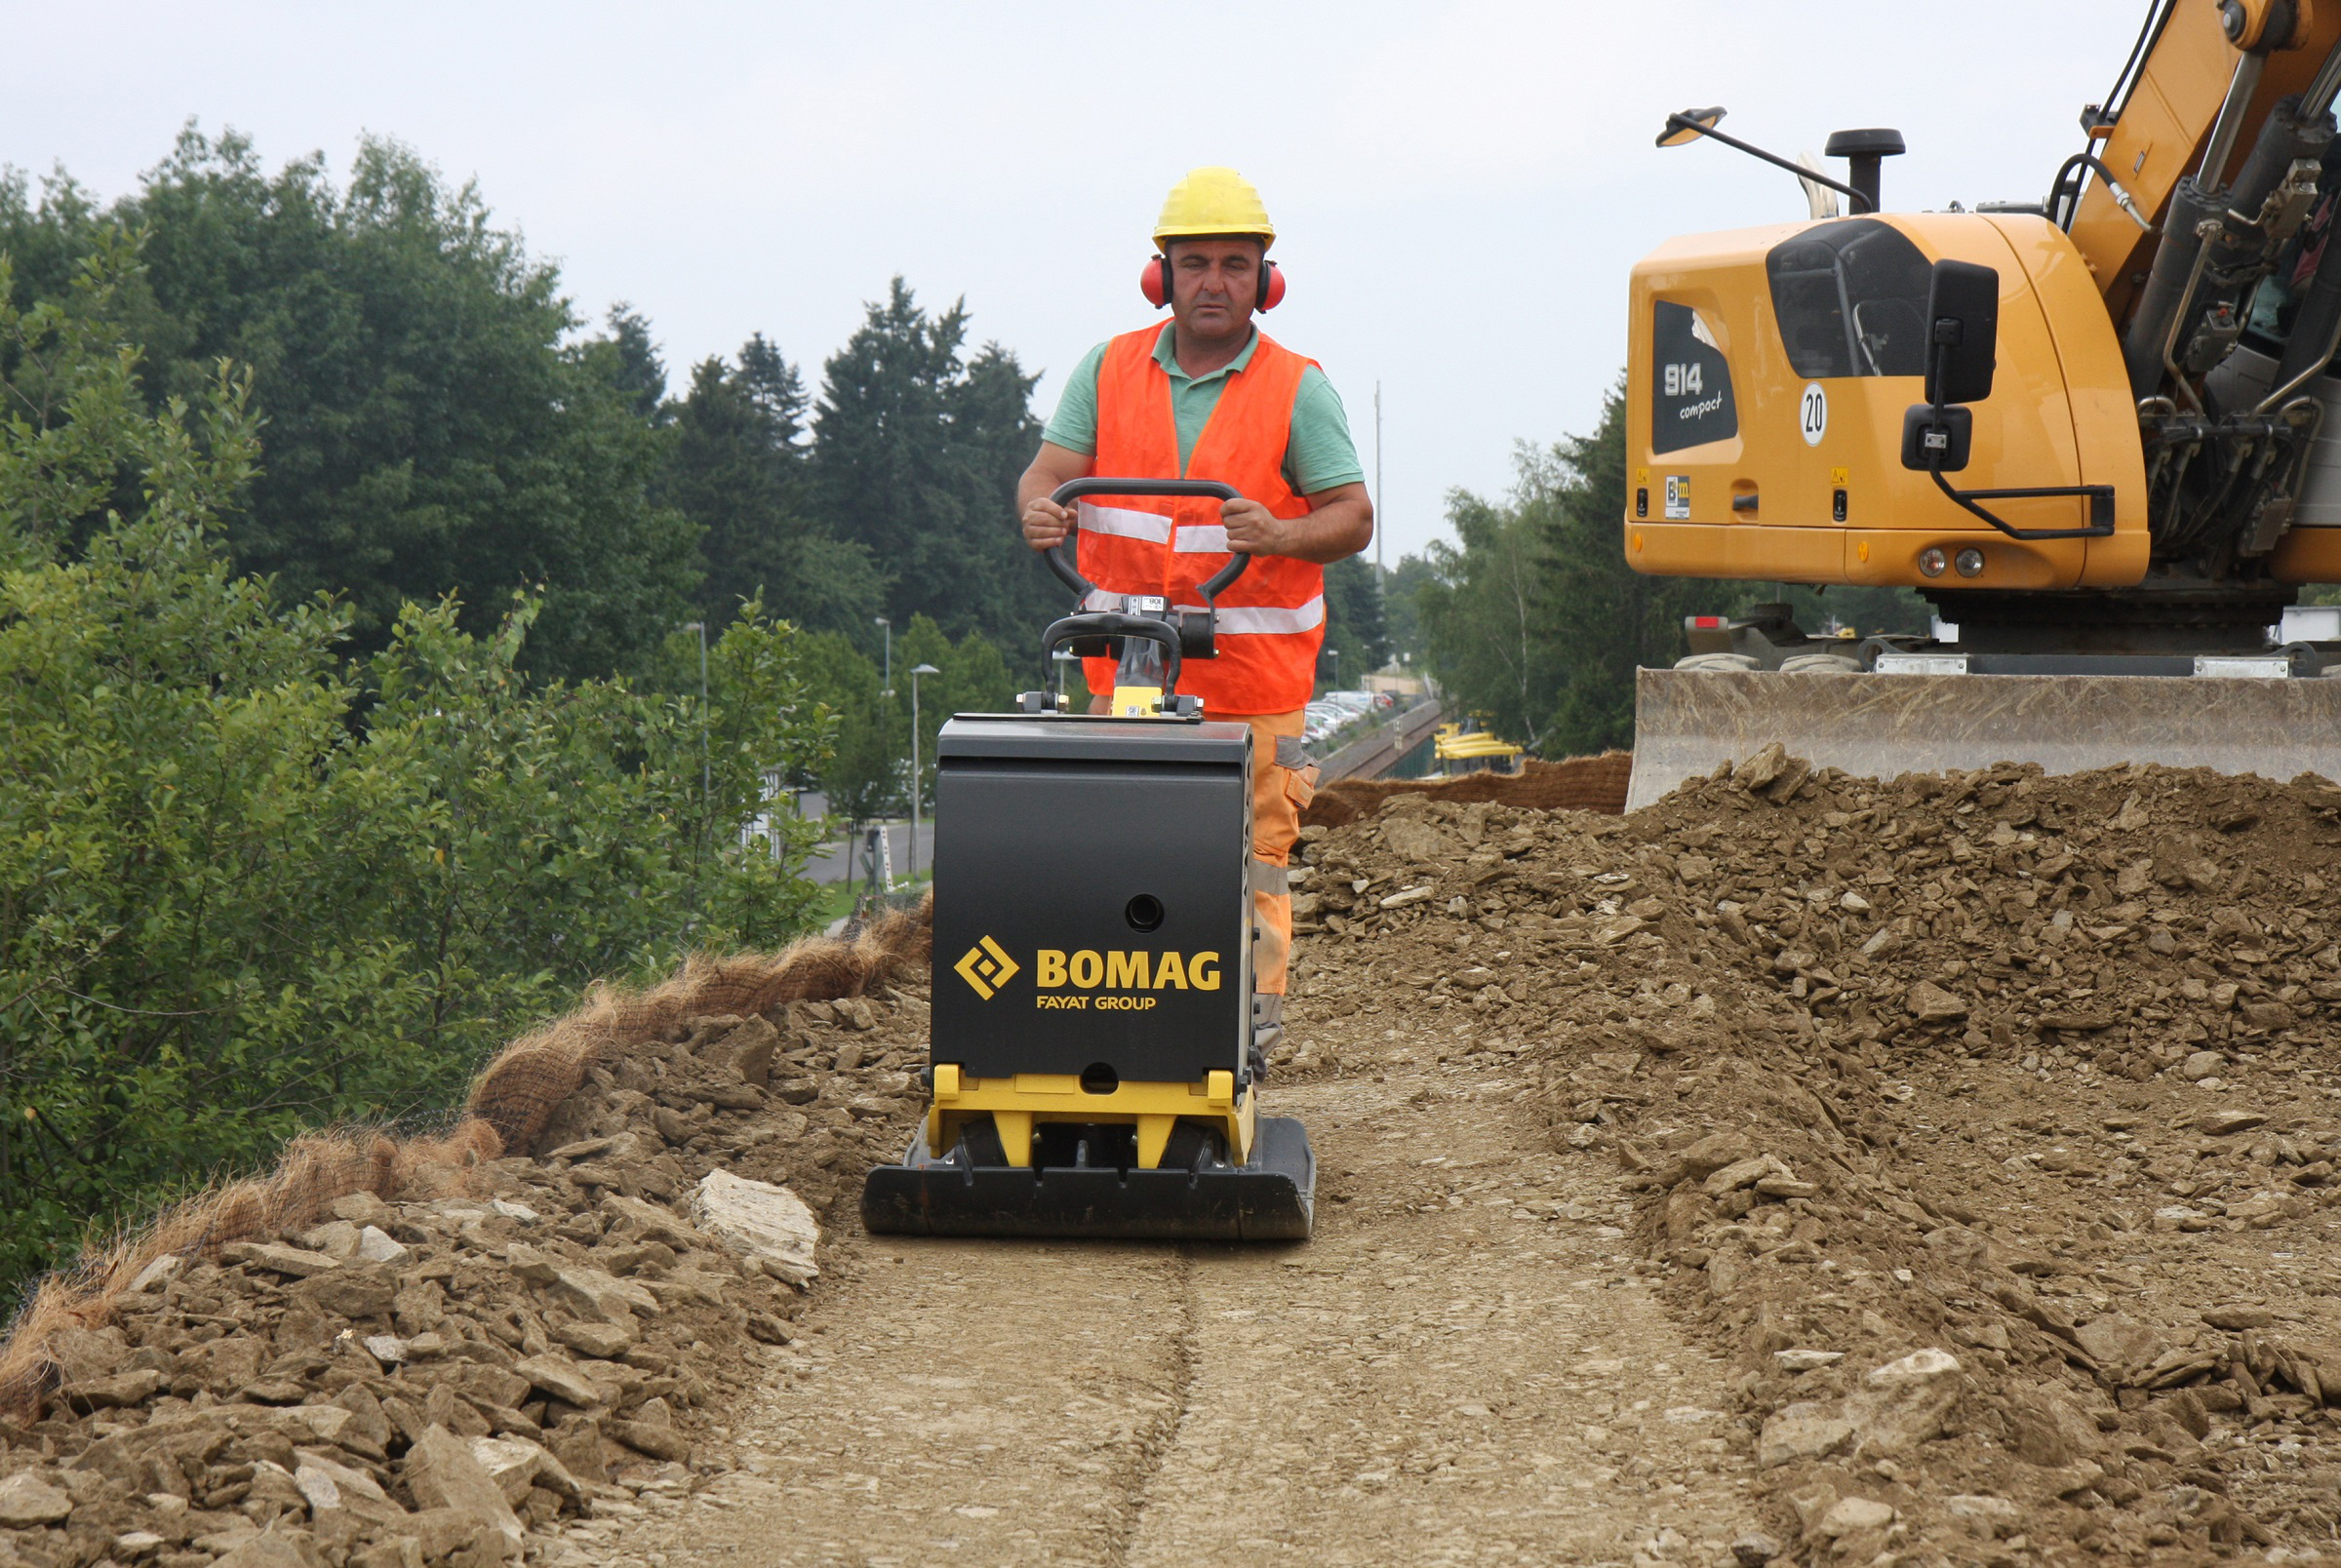 BOMAG intros gas-powered BPR 60/65 reversible plate compactor